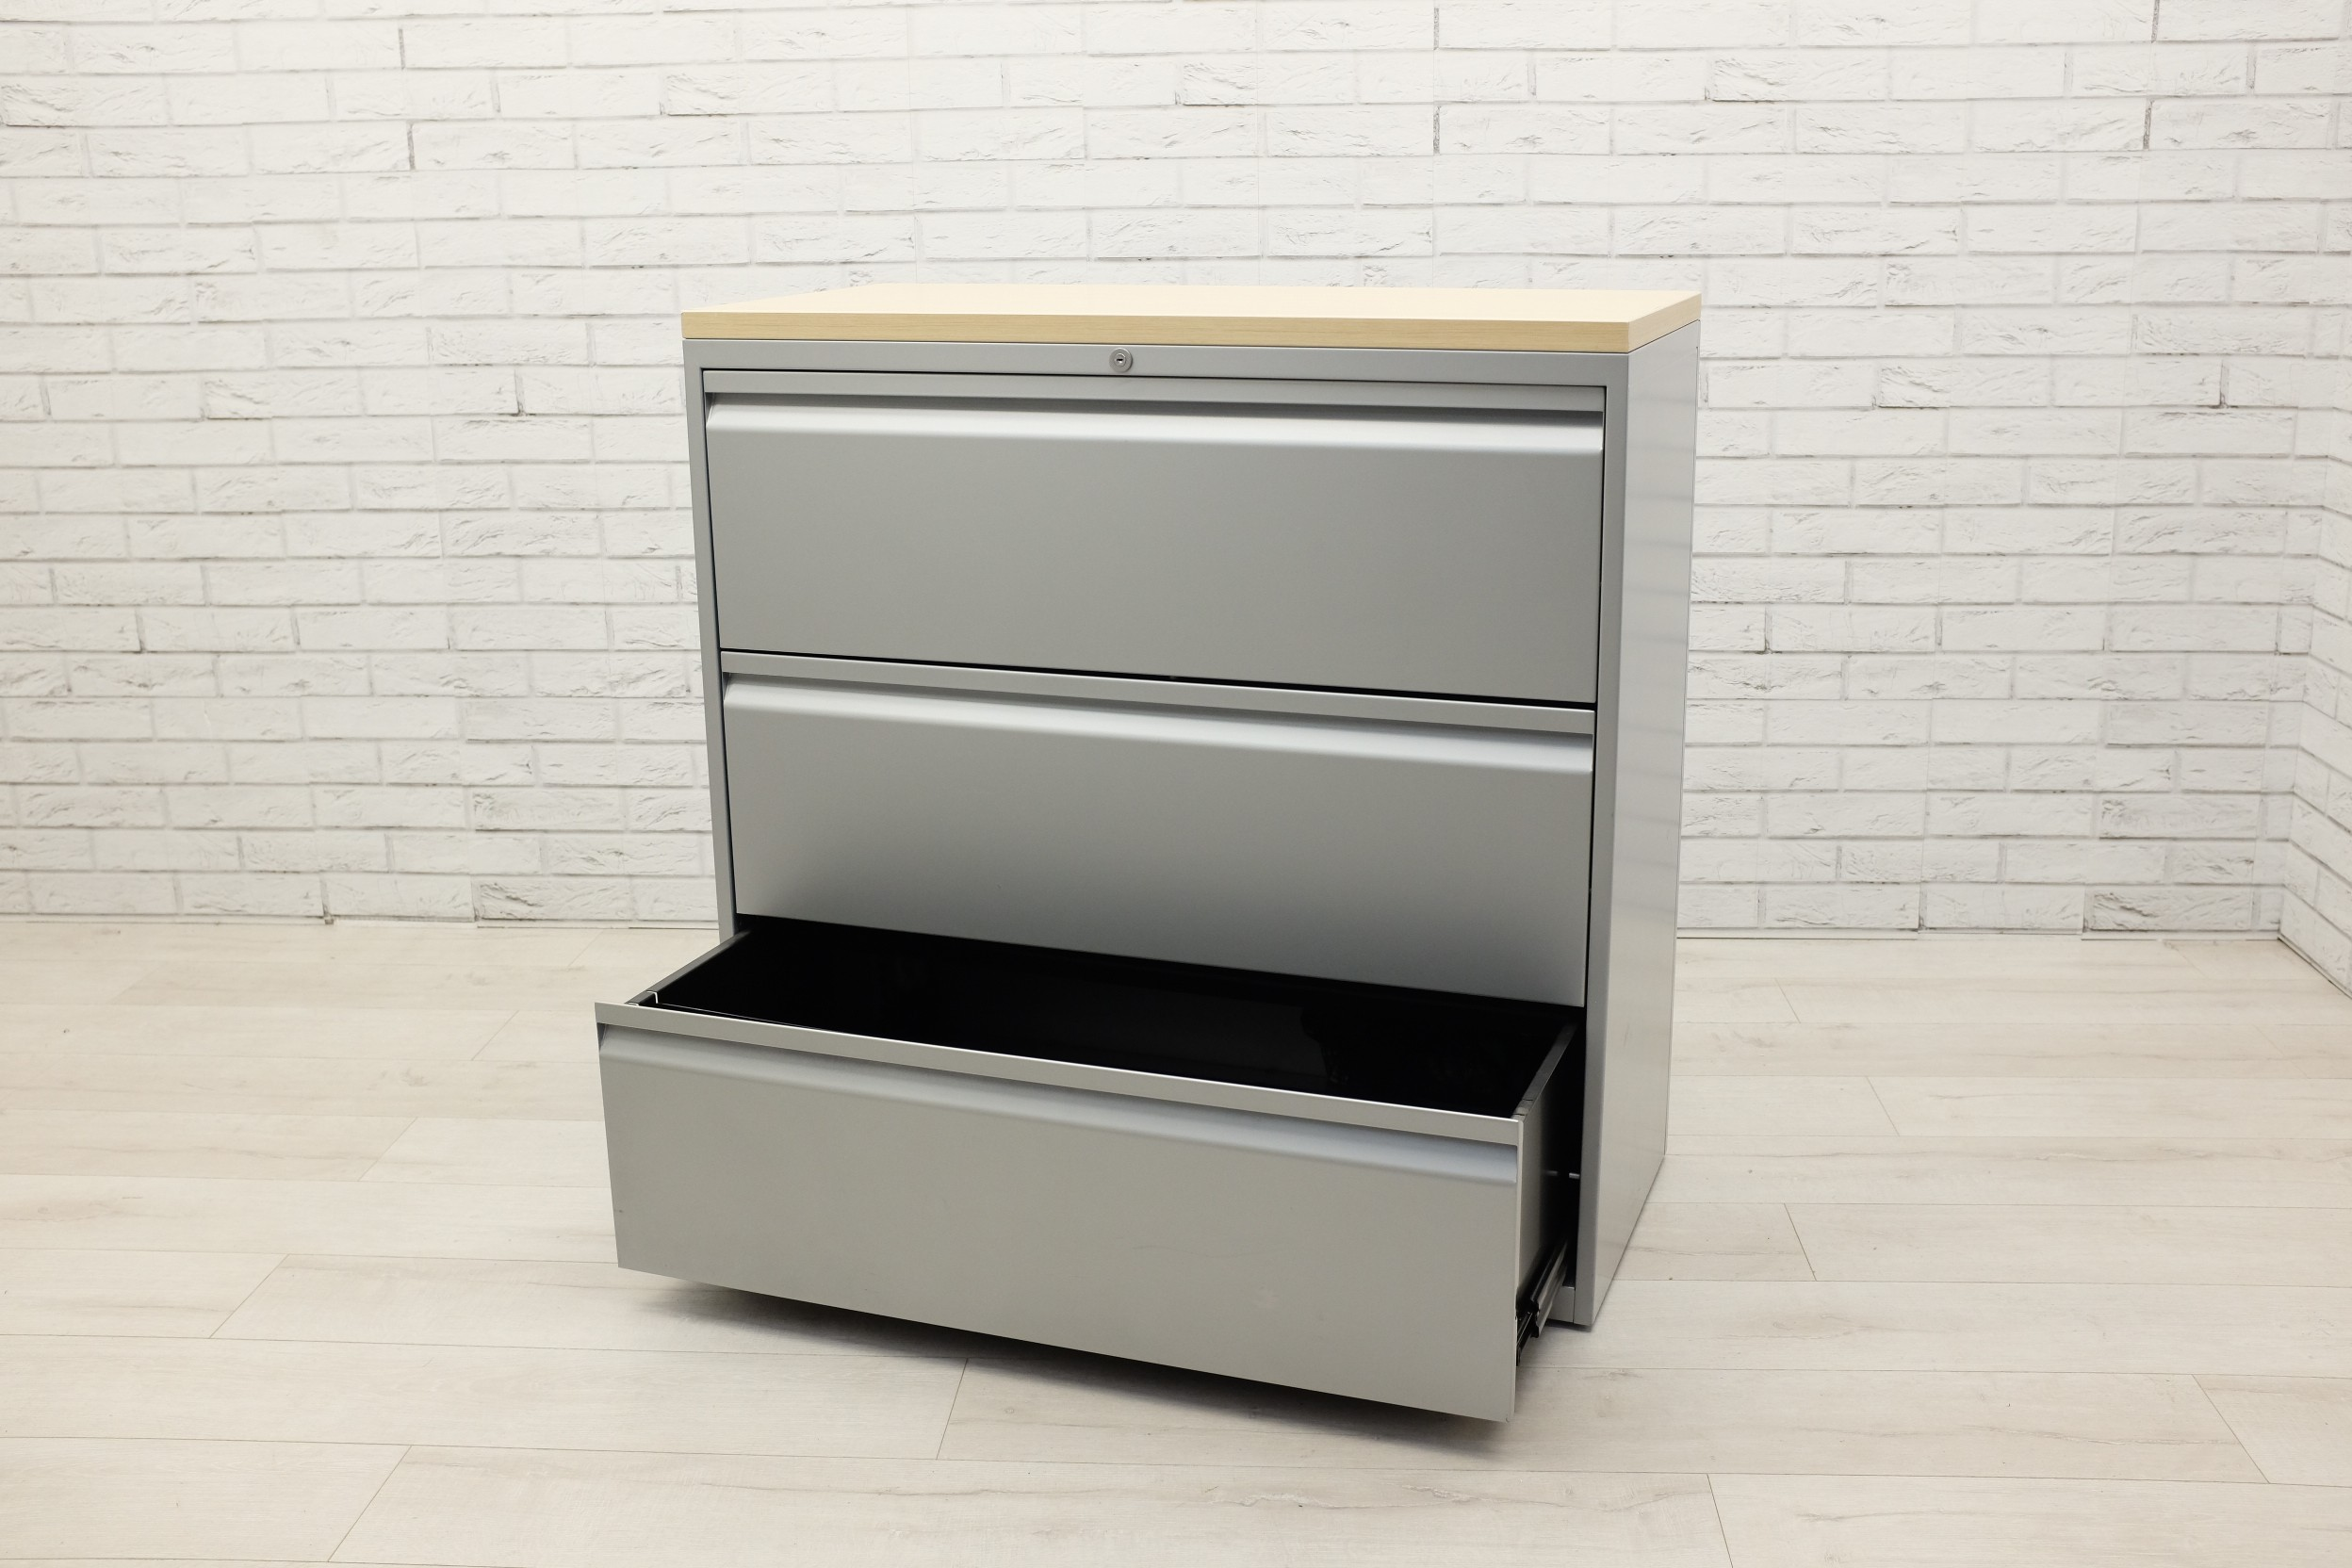 Bisley 10 Drawer Cabinet | Bisley File Cabinet | 2 Drawer White File Cabinet